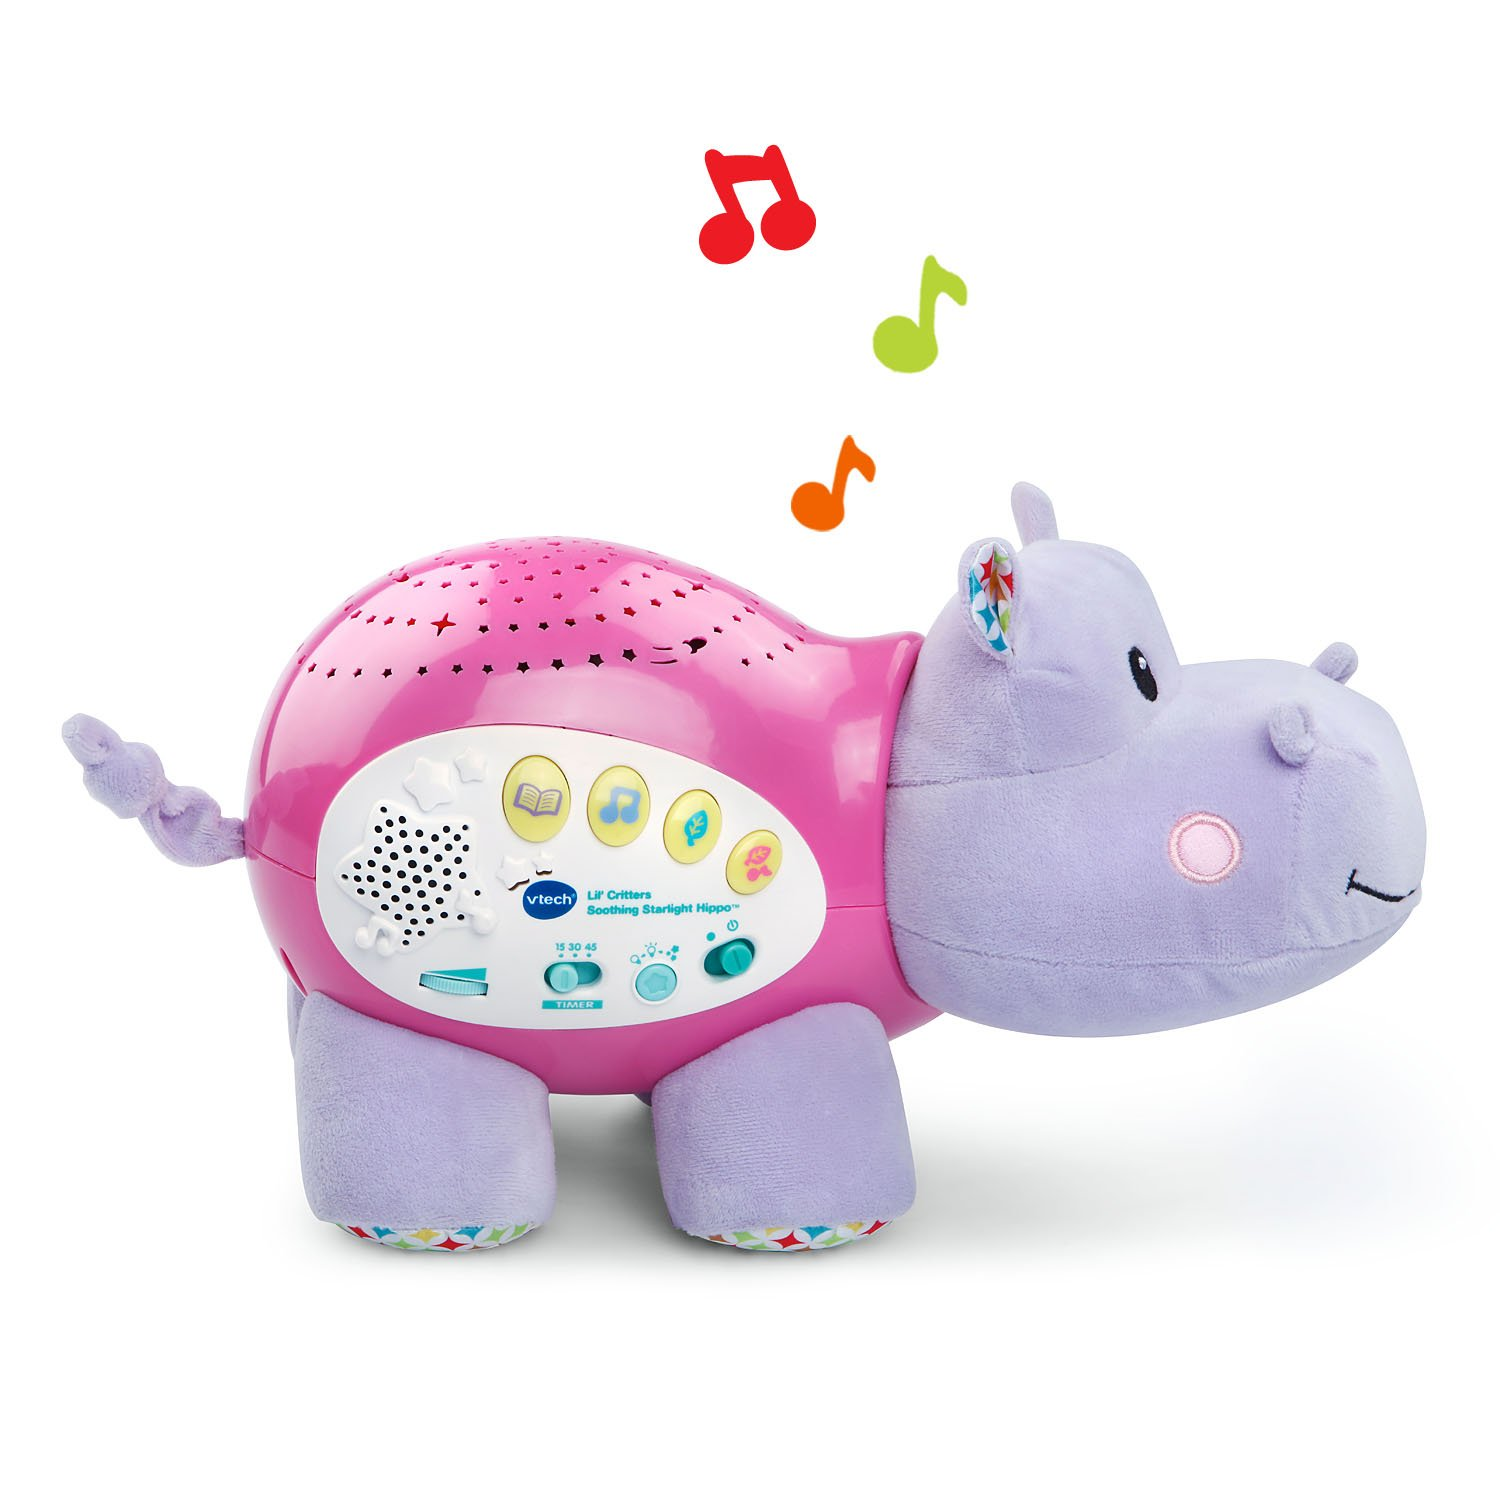 VTech Baby Lil' Critters Soothing Starlight Hippo, Pink (Amazon Exclusive) by VTech (Image #2)